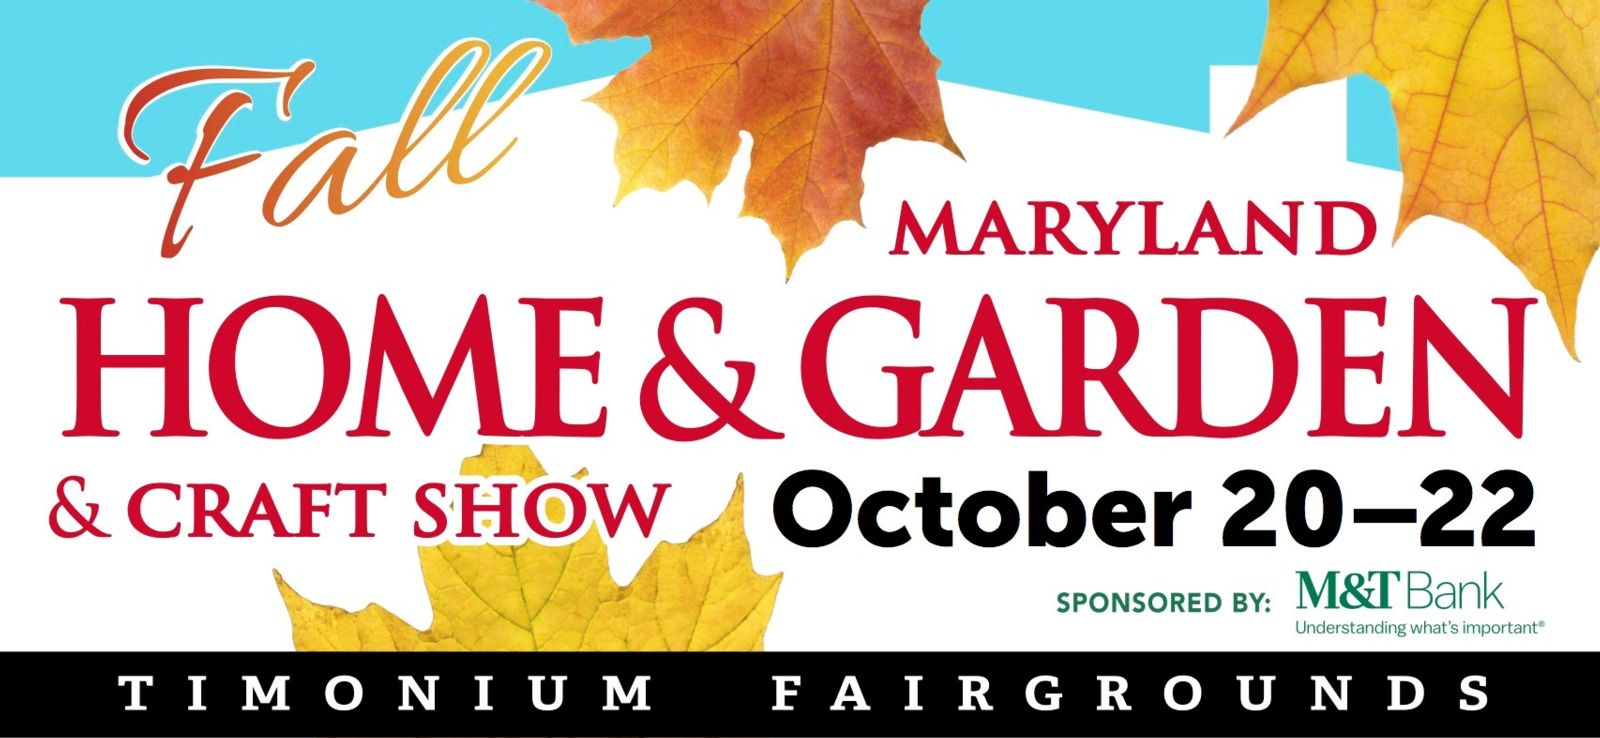 Maryland State Fair Year Round Events Md Home Garden Show S L Productions 10 20 22 17